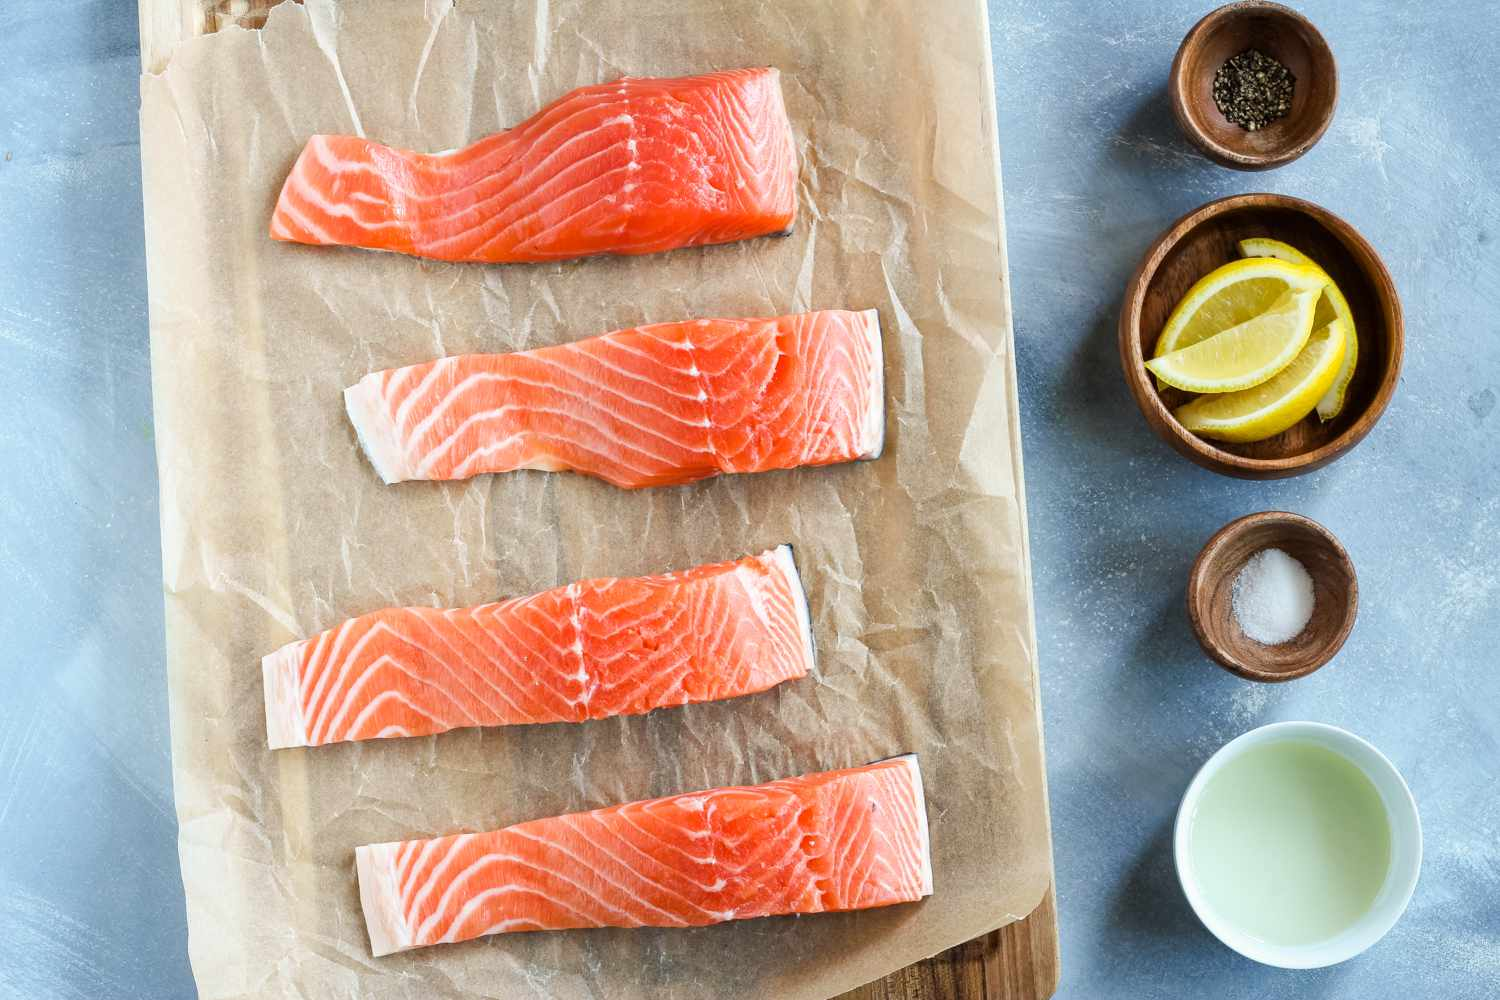 Ingredients for grilled salmon